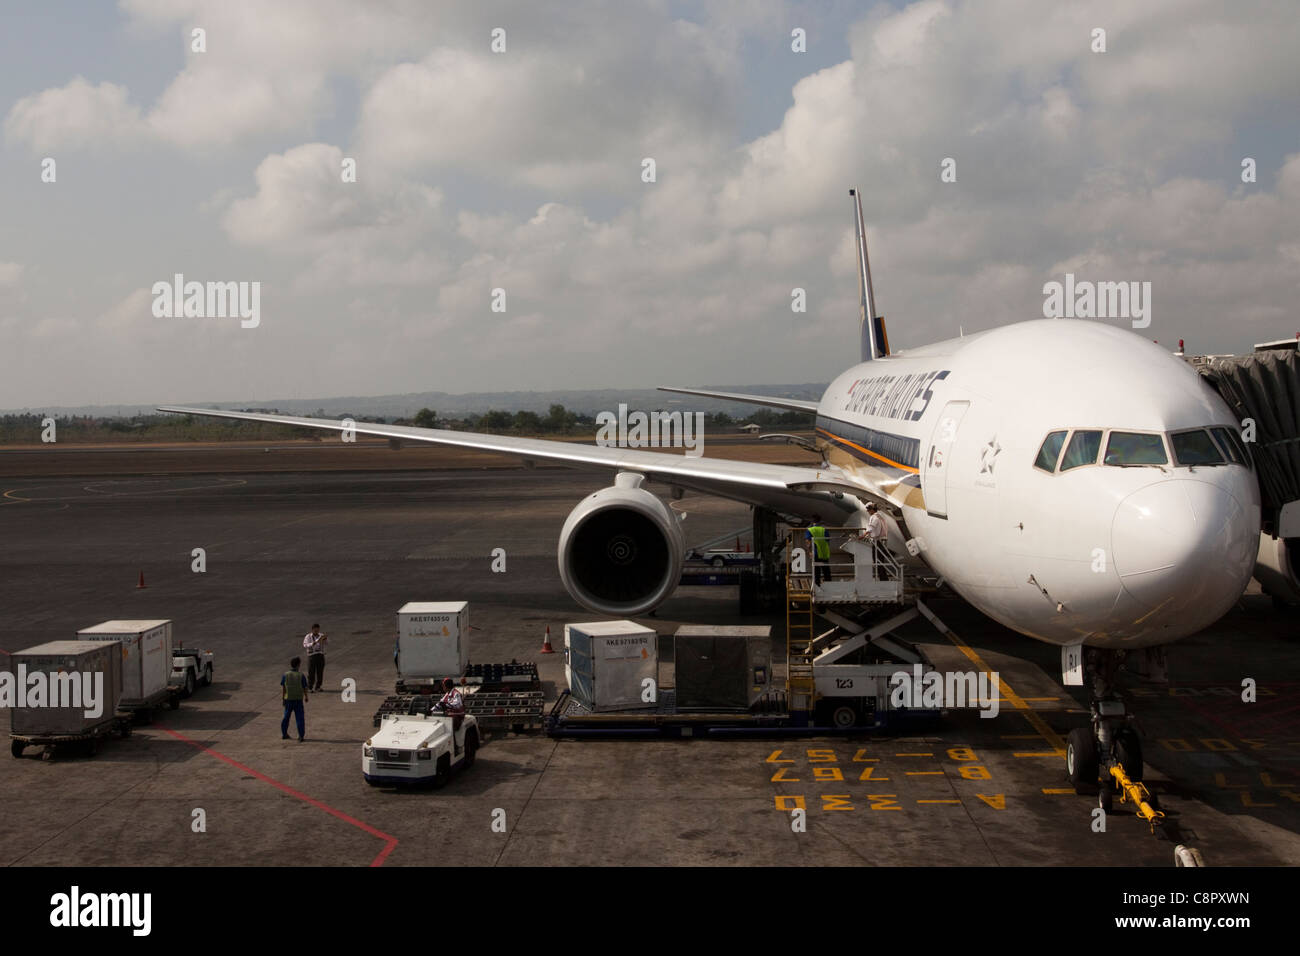 Singapore Airlines aircraft/plane being loaded with cargo, Indonesia, Asia - Stock Image